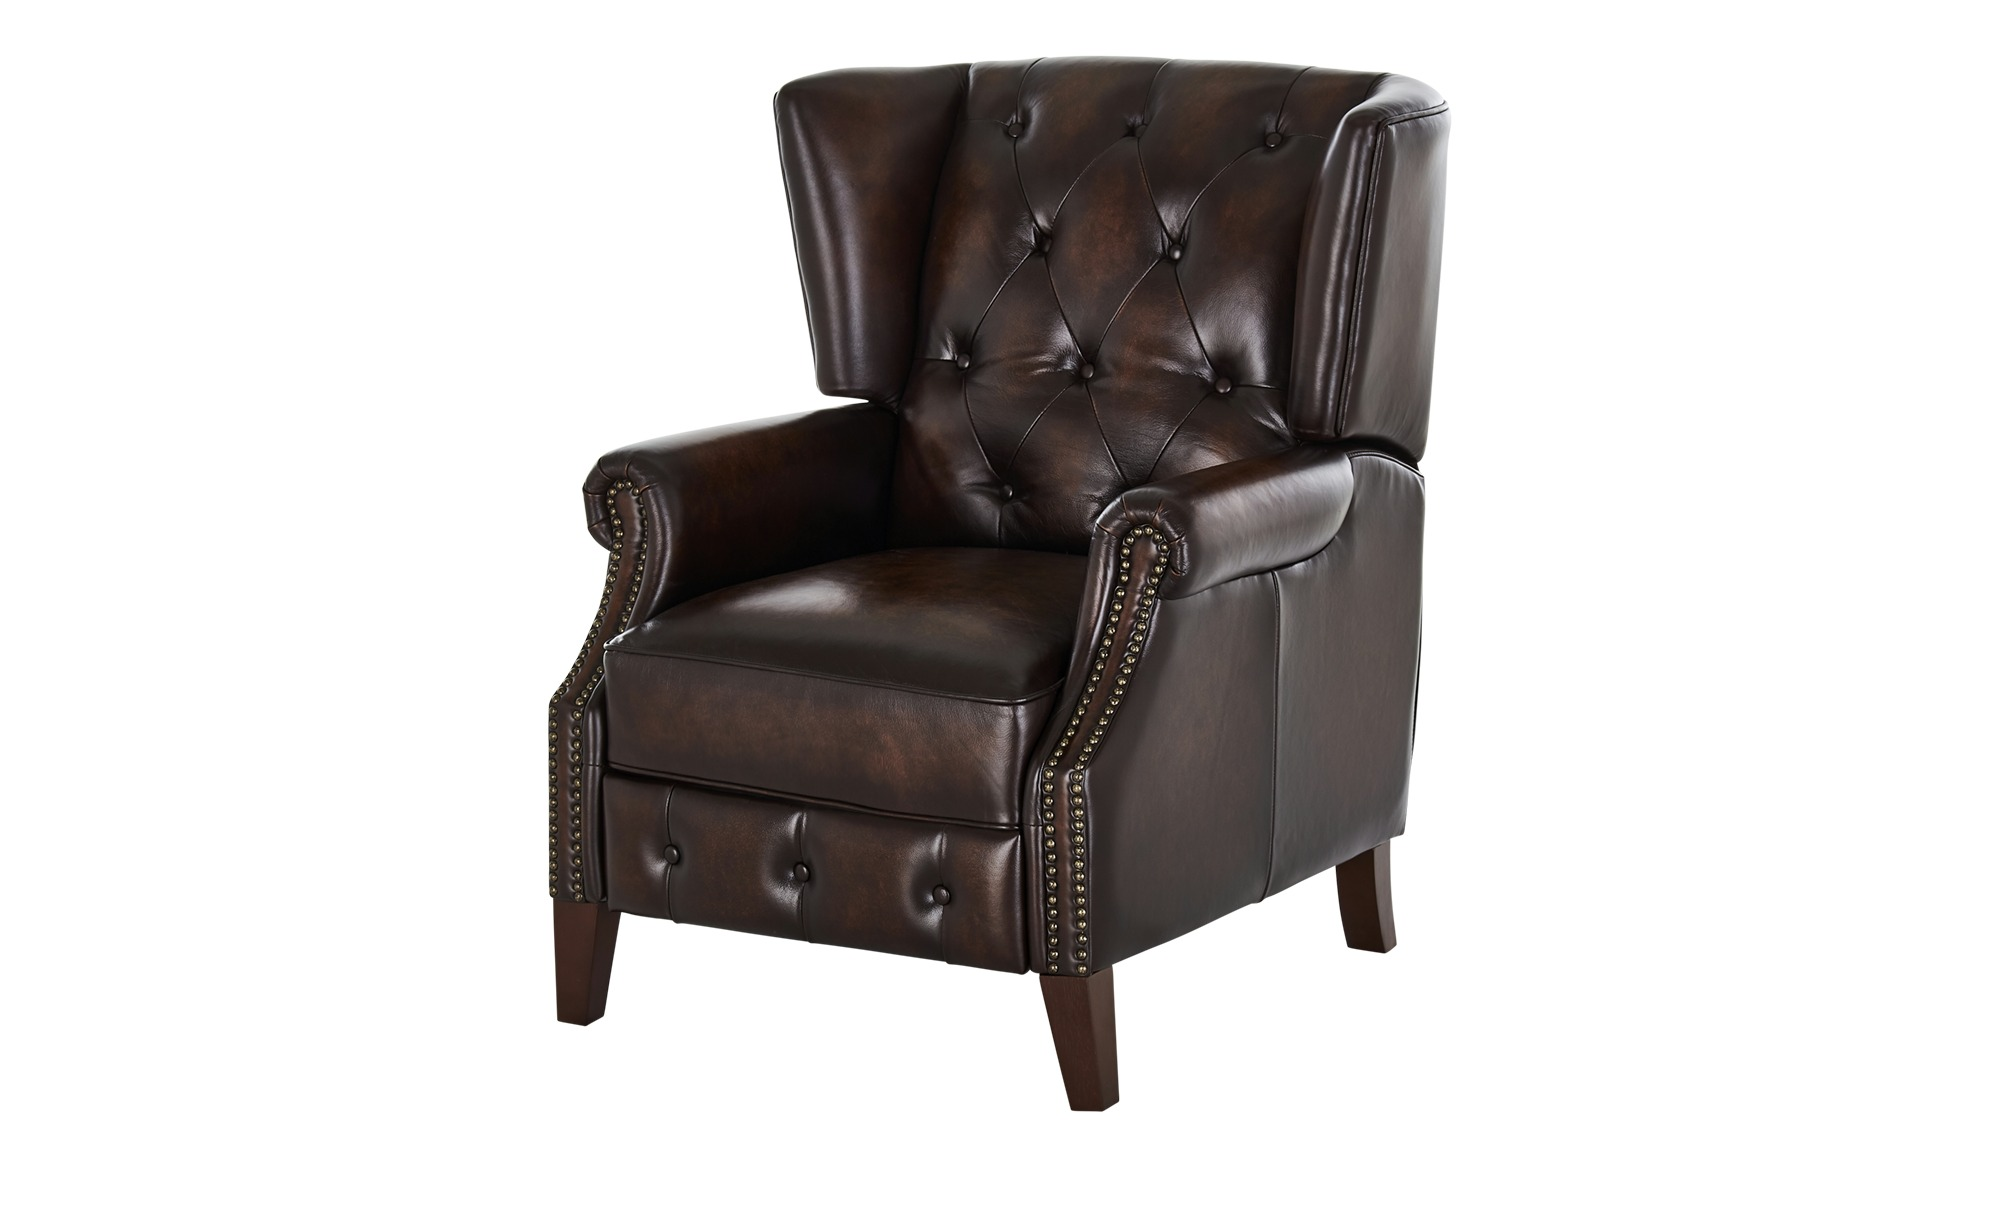 uno Relaxsessel aus Leder  Chesterfield